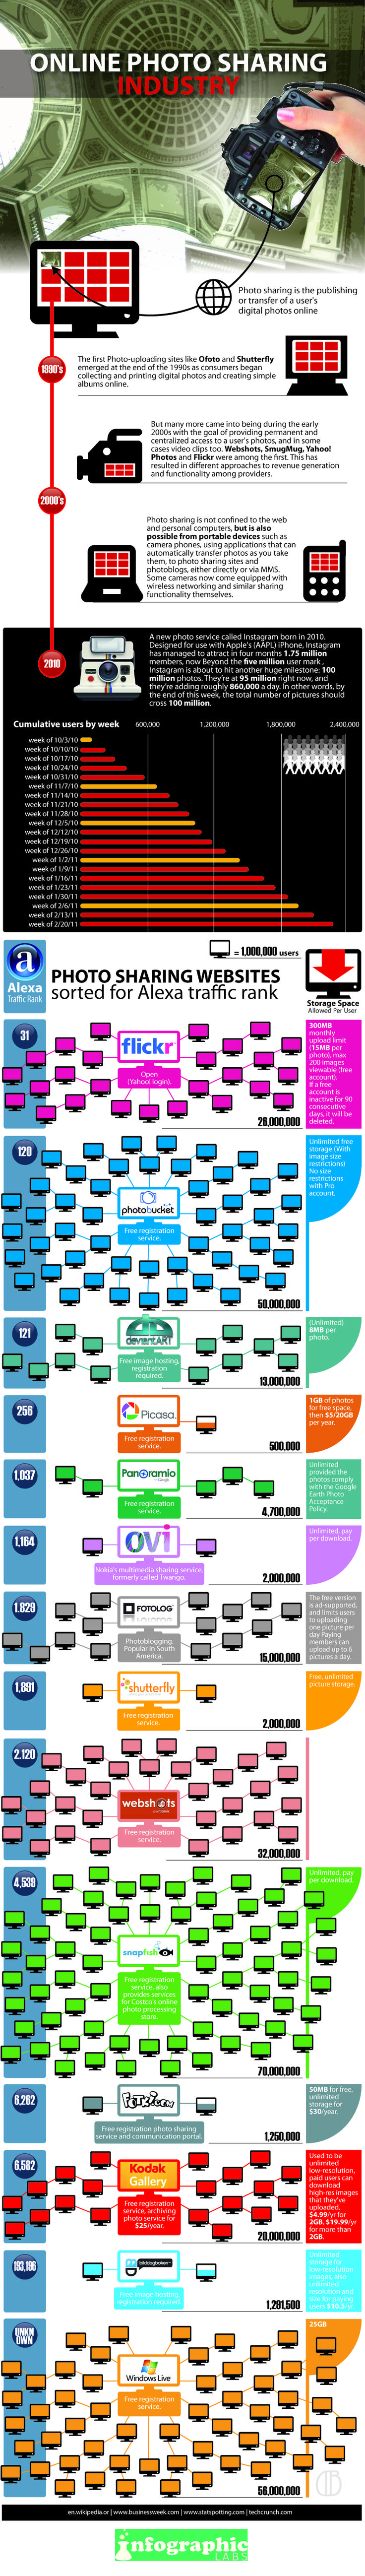 Online Photo Sharing: Comparing The Services